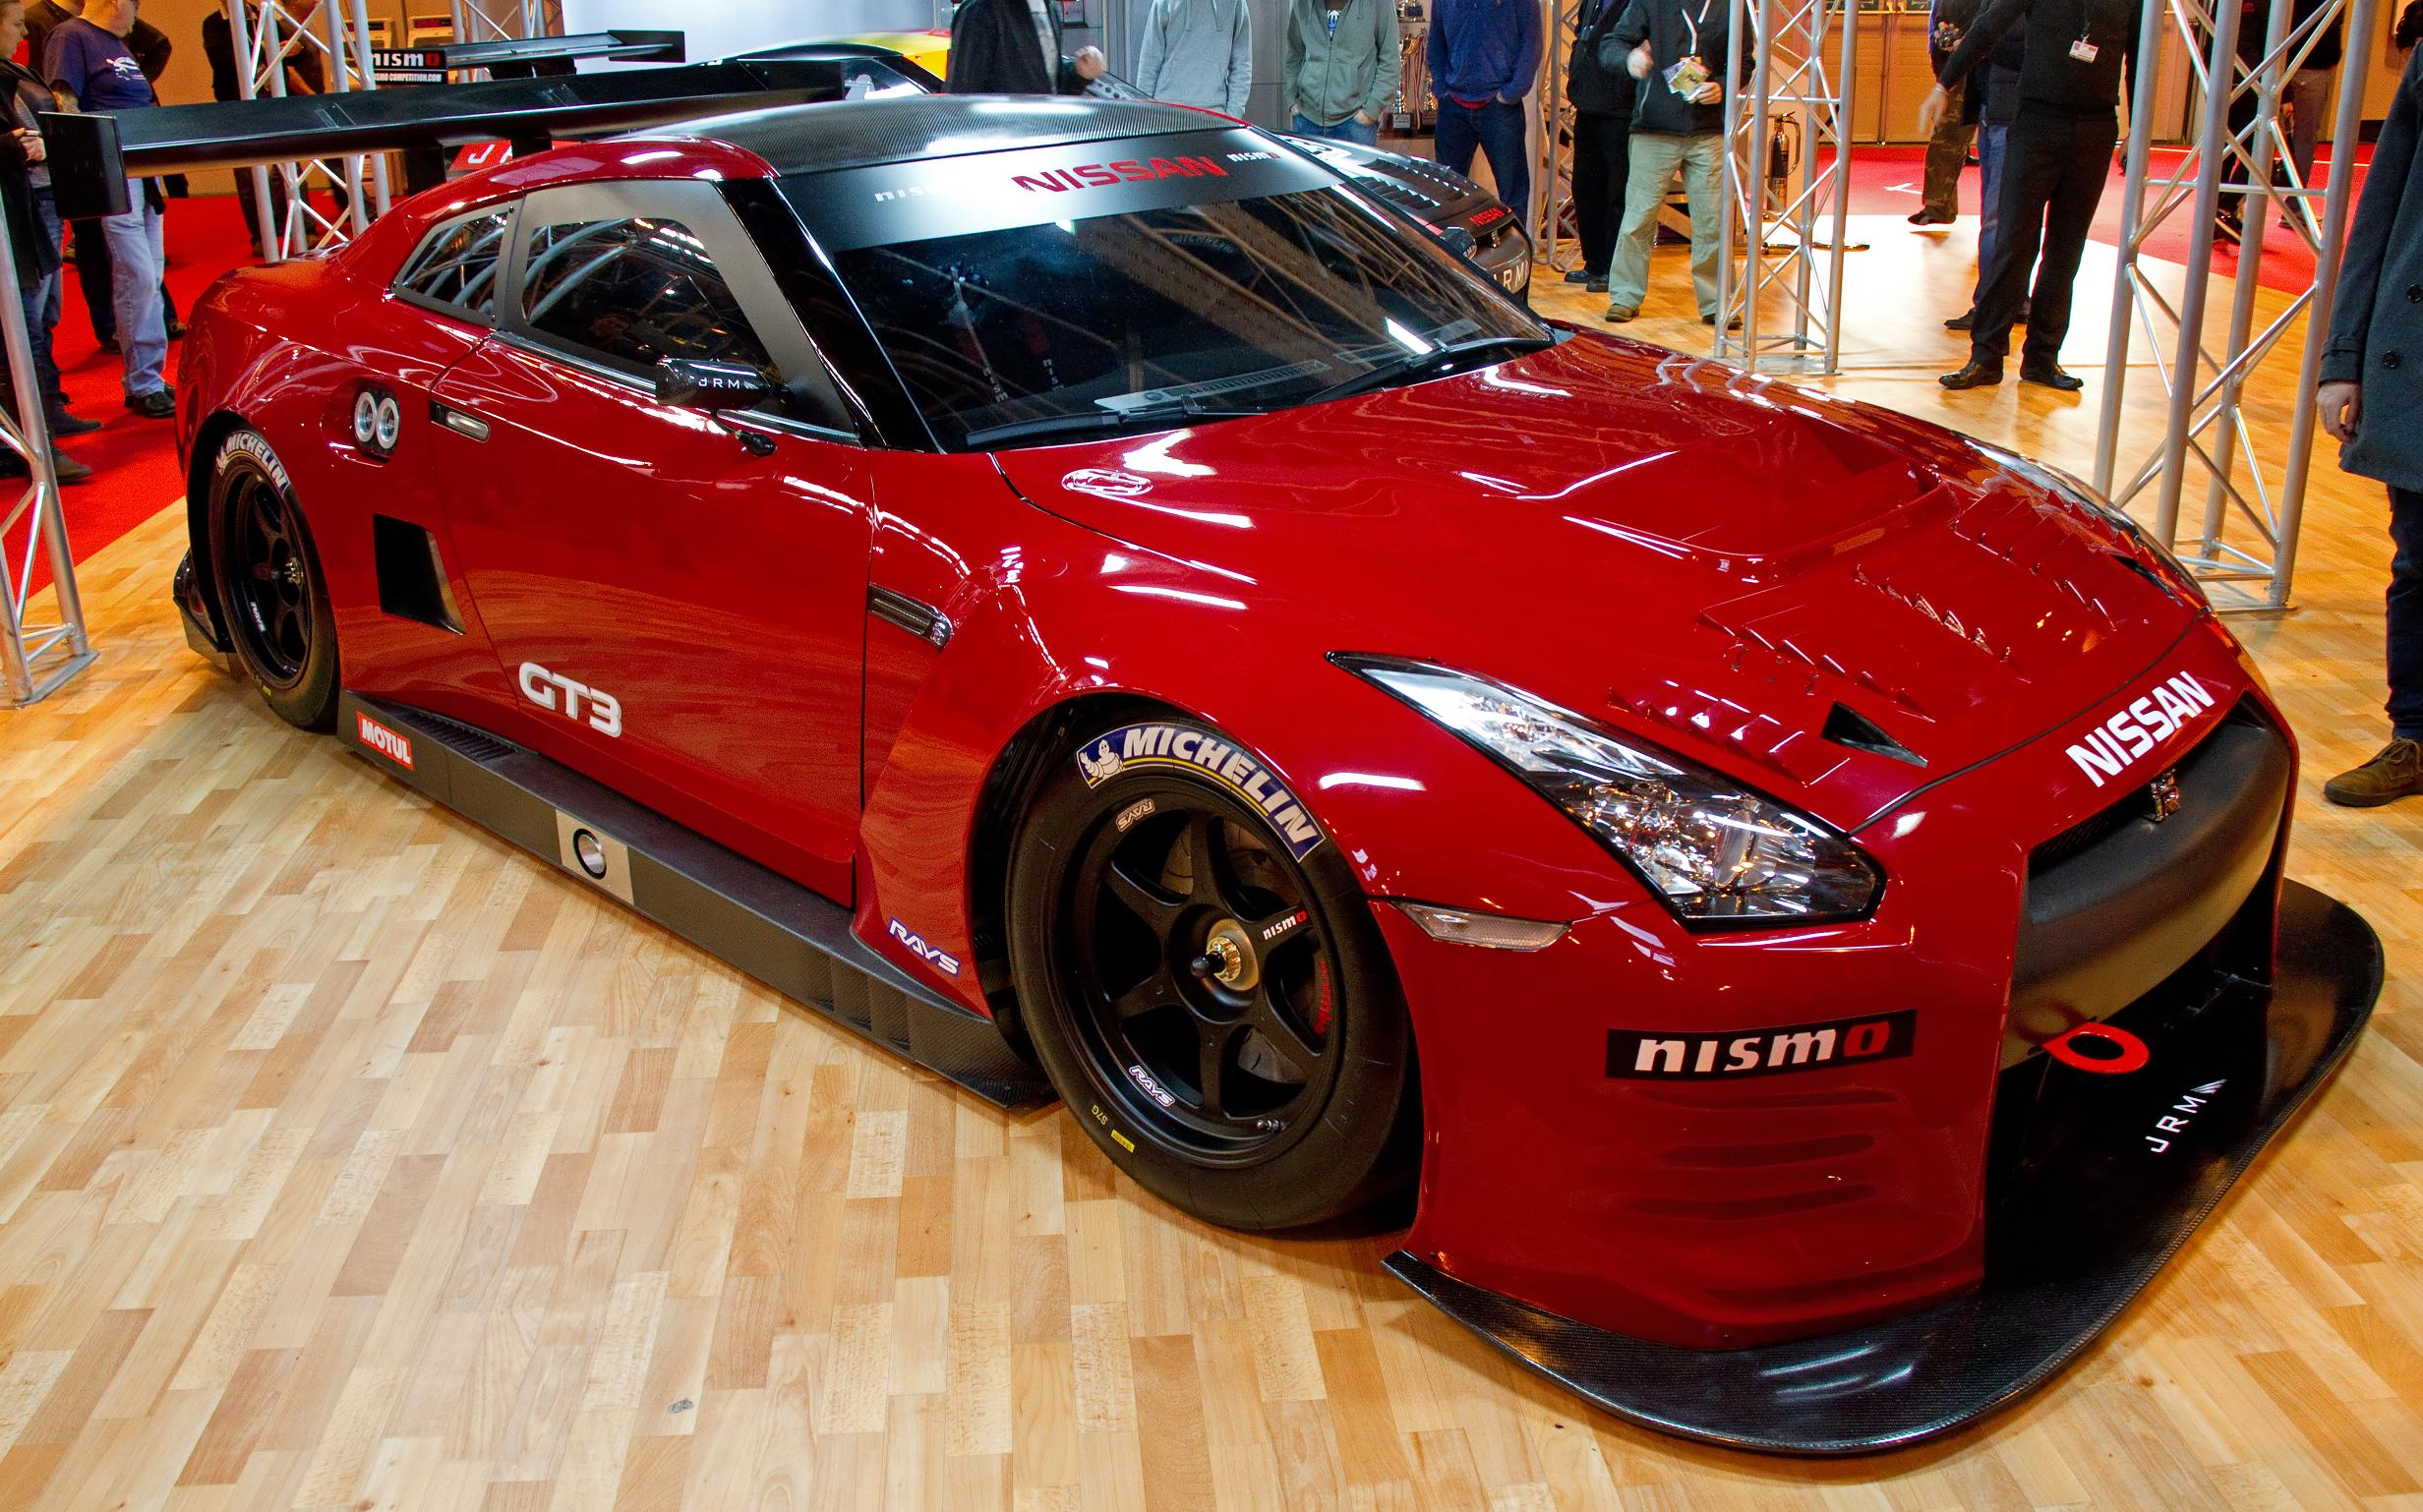 Nissan GT-R is one of the best high tech cars